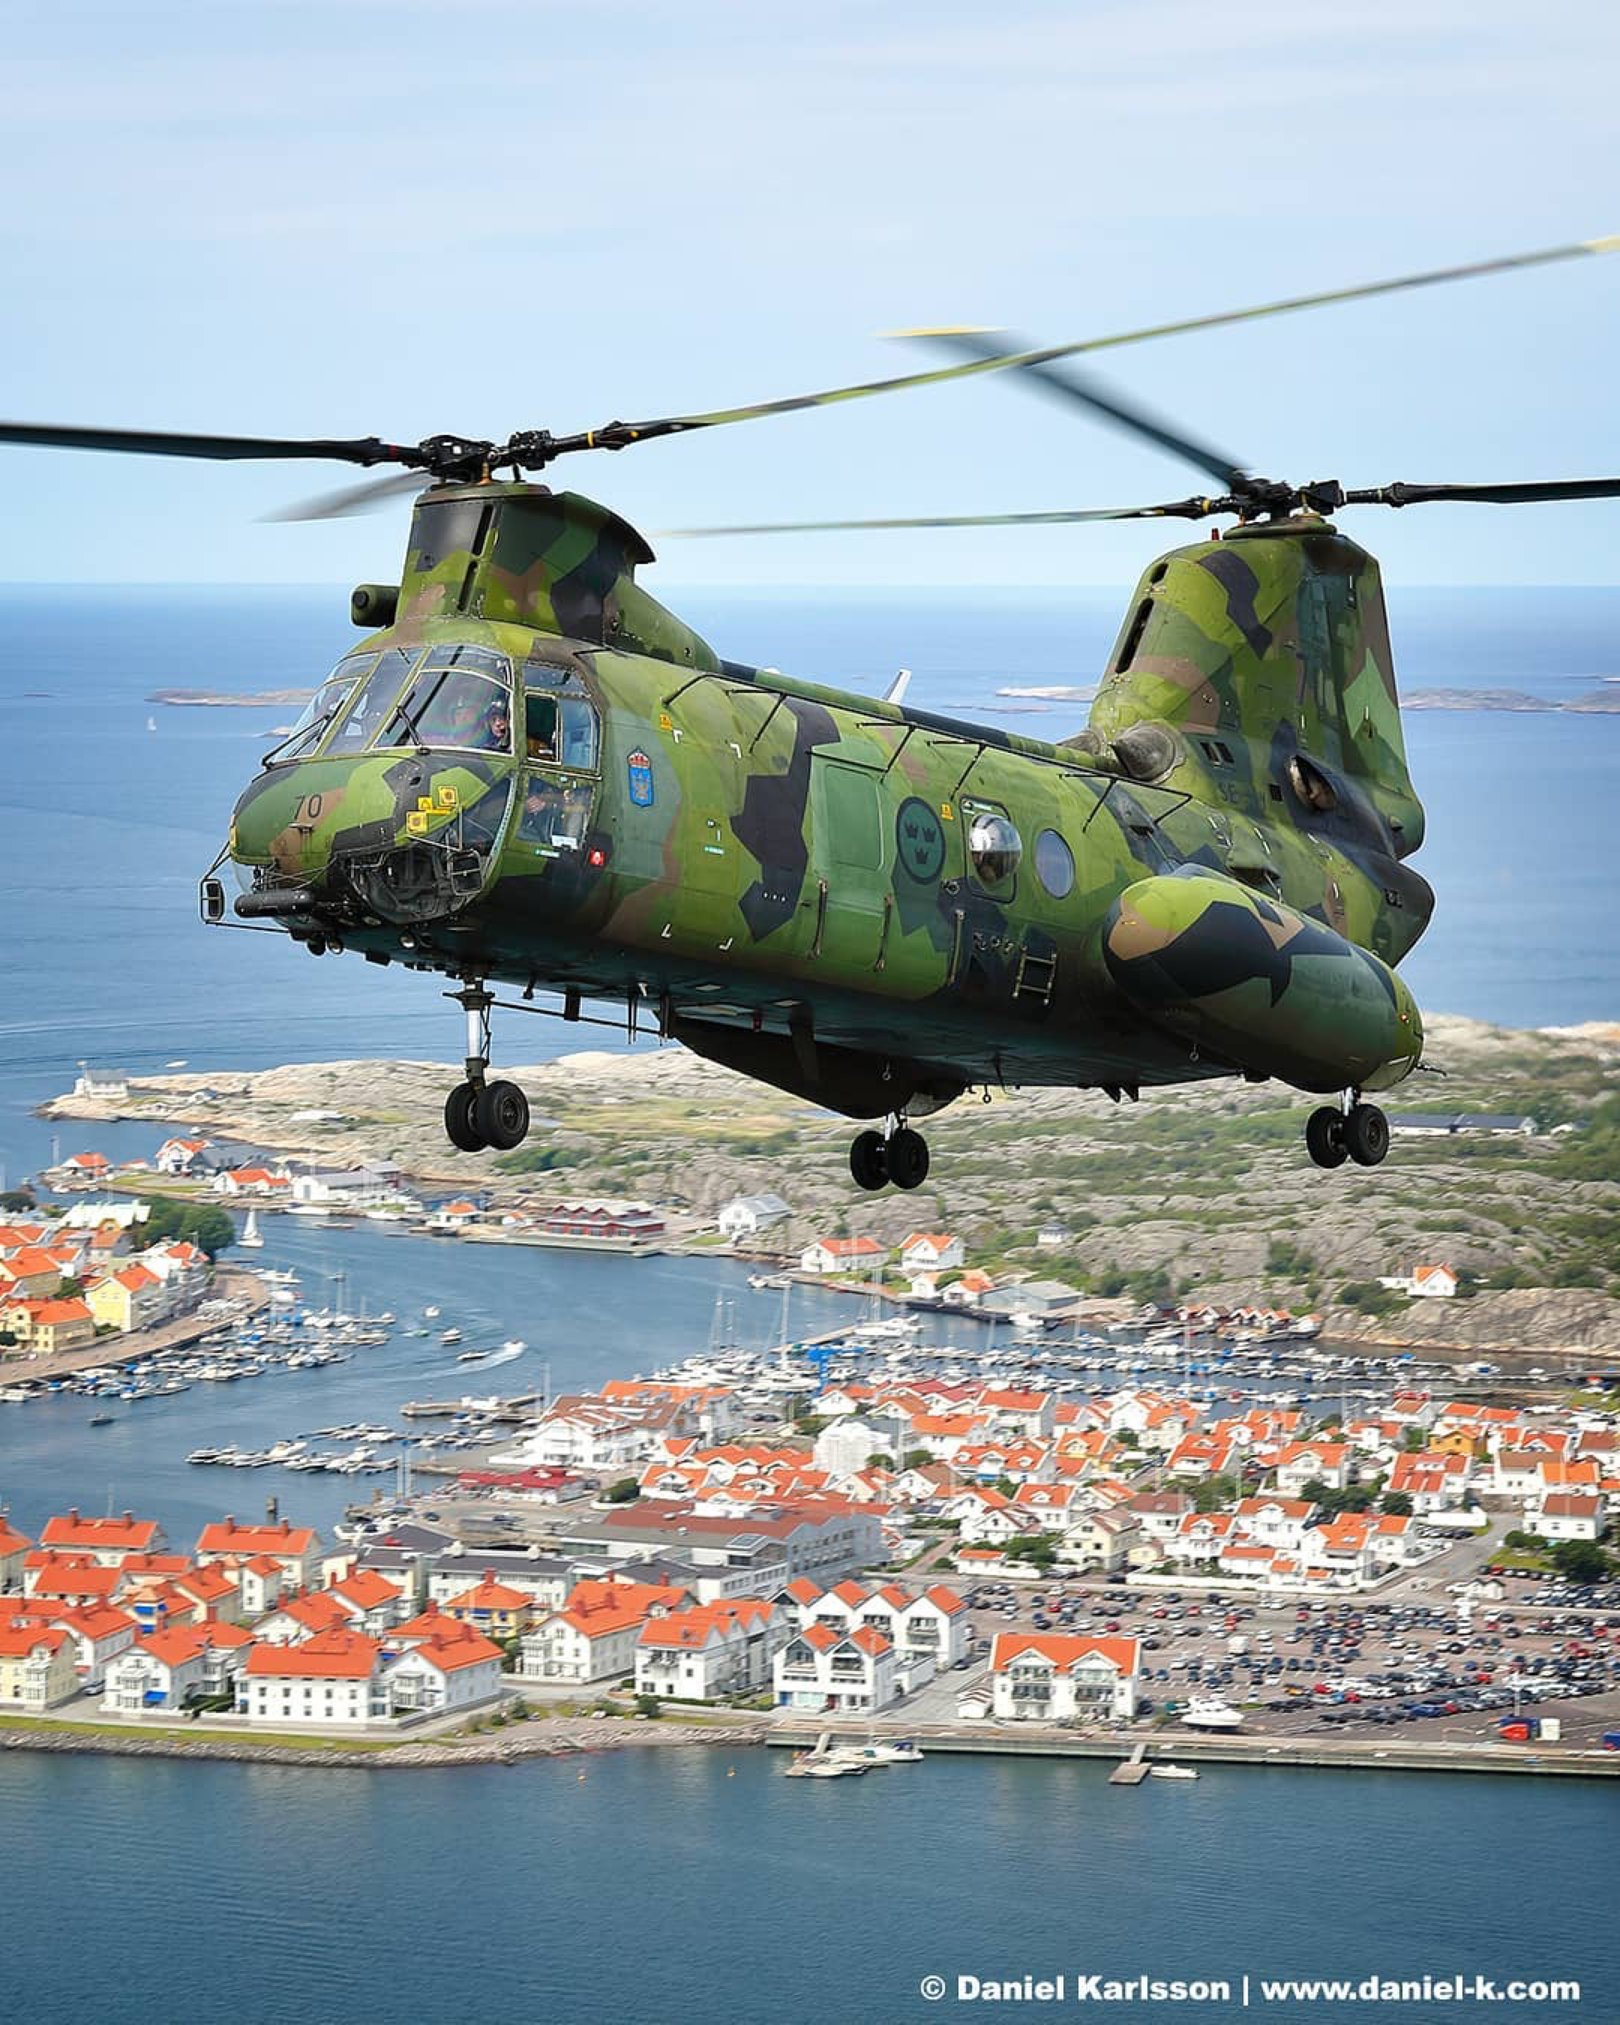 A Swedish HKP 4 flies over Marstrand, Sweden. Photo submitted by Daniel Karlsson (Instagram user @daniel_k_com) using #verticalmag